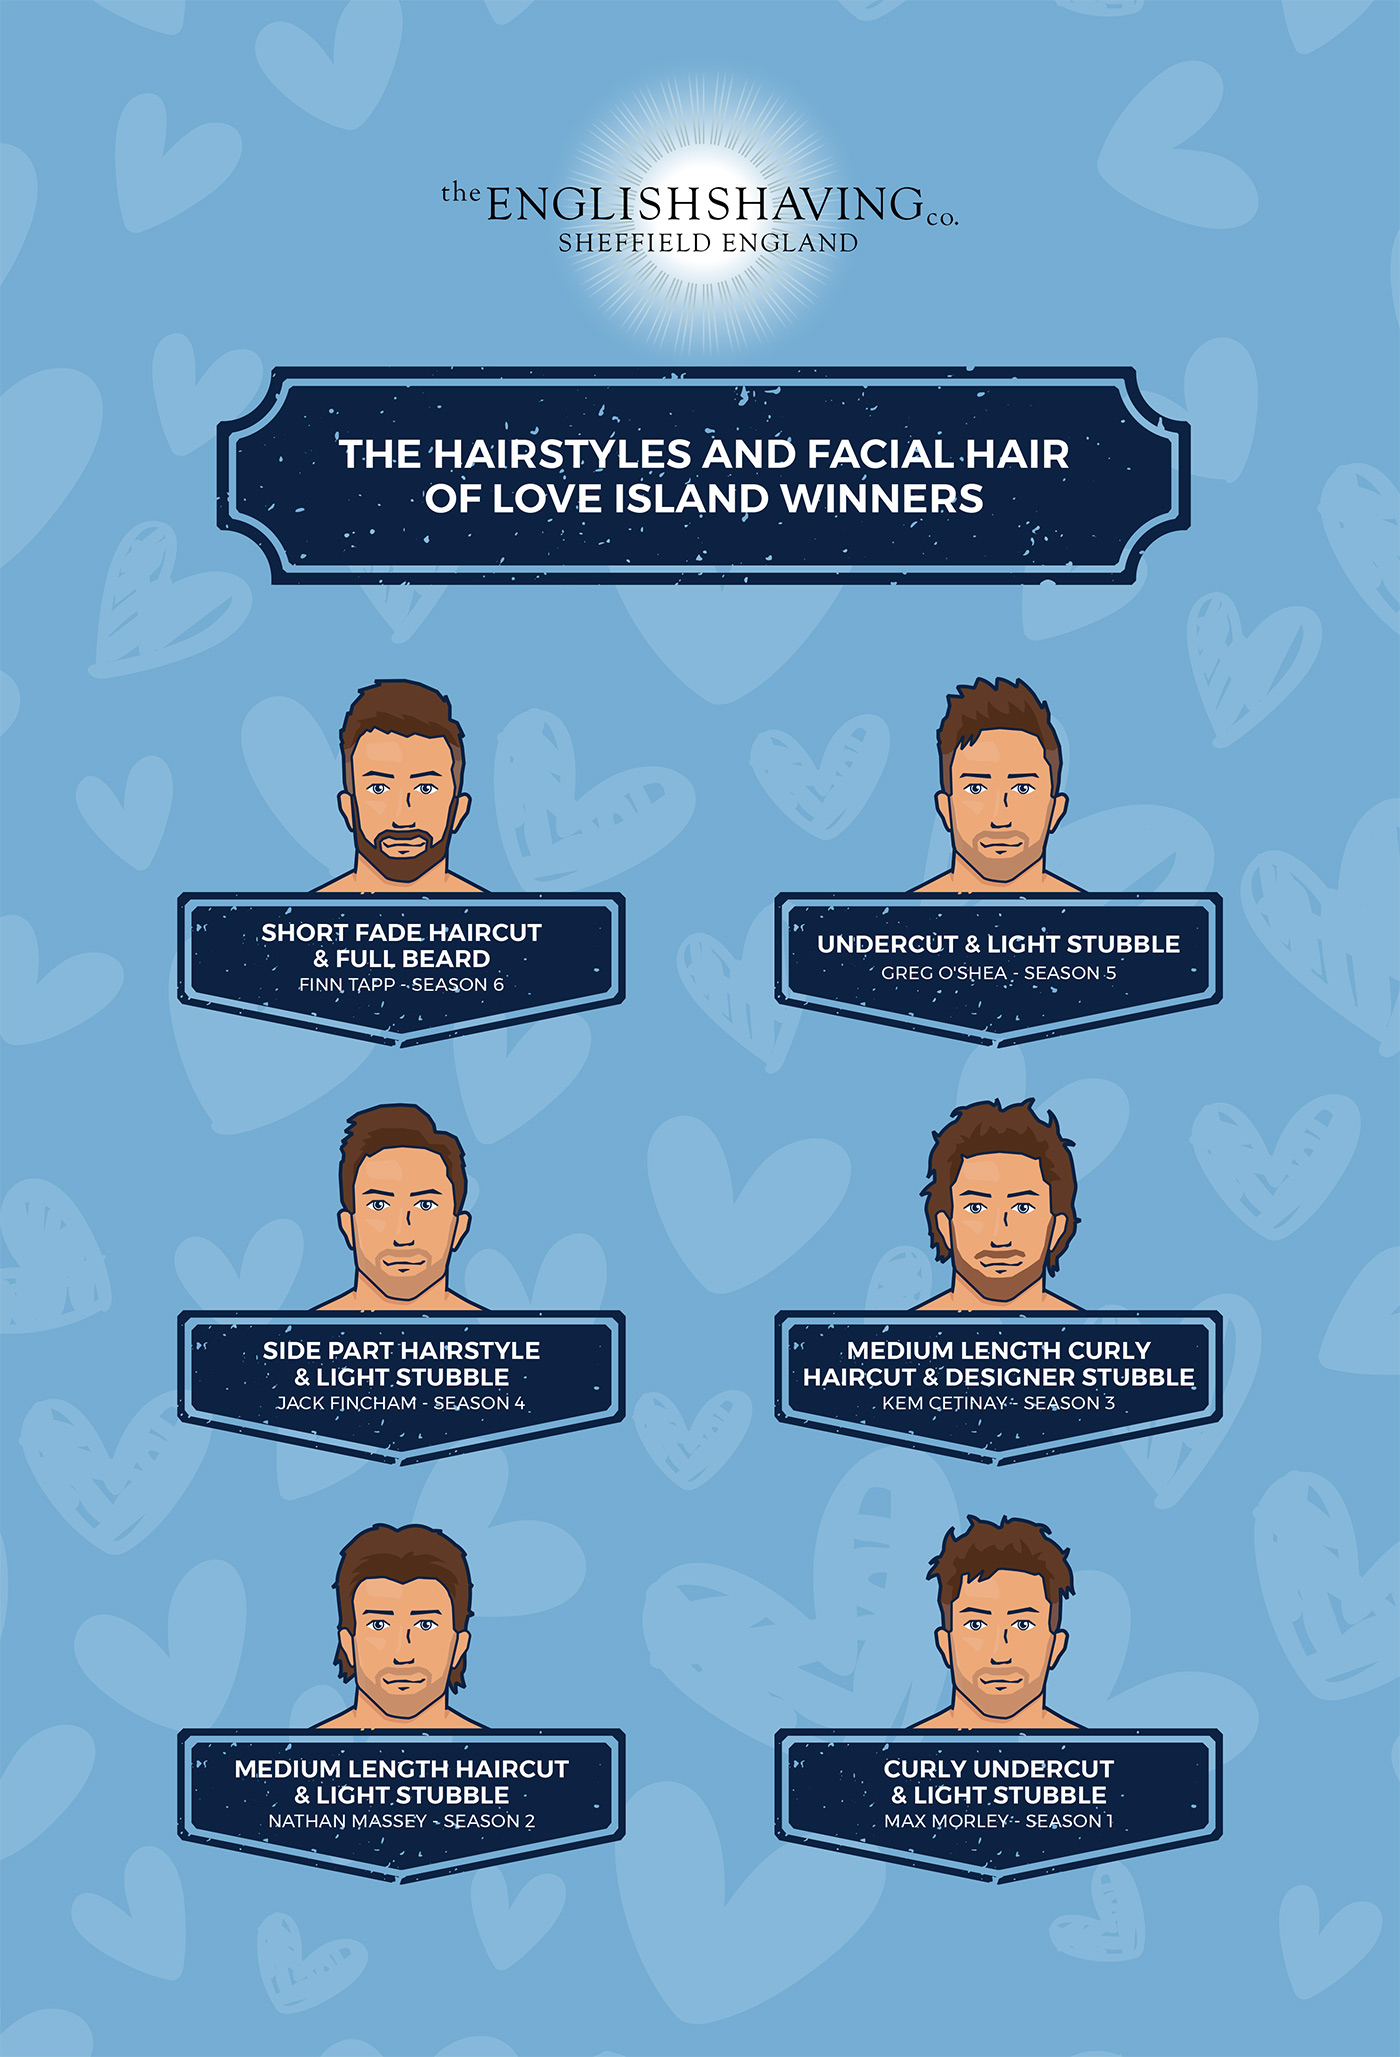 The Hairstyles and Facial Hair of Love Island Winners